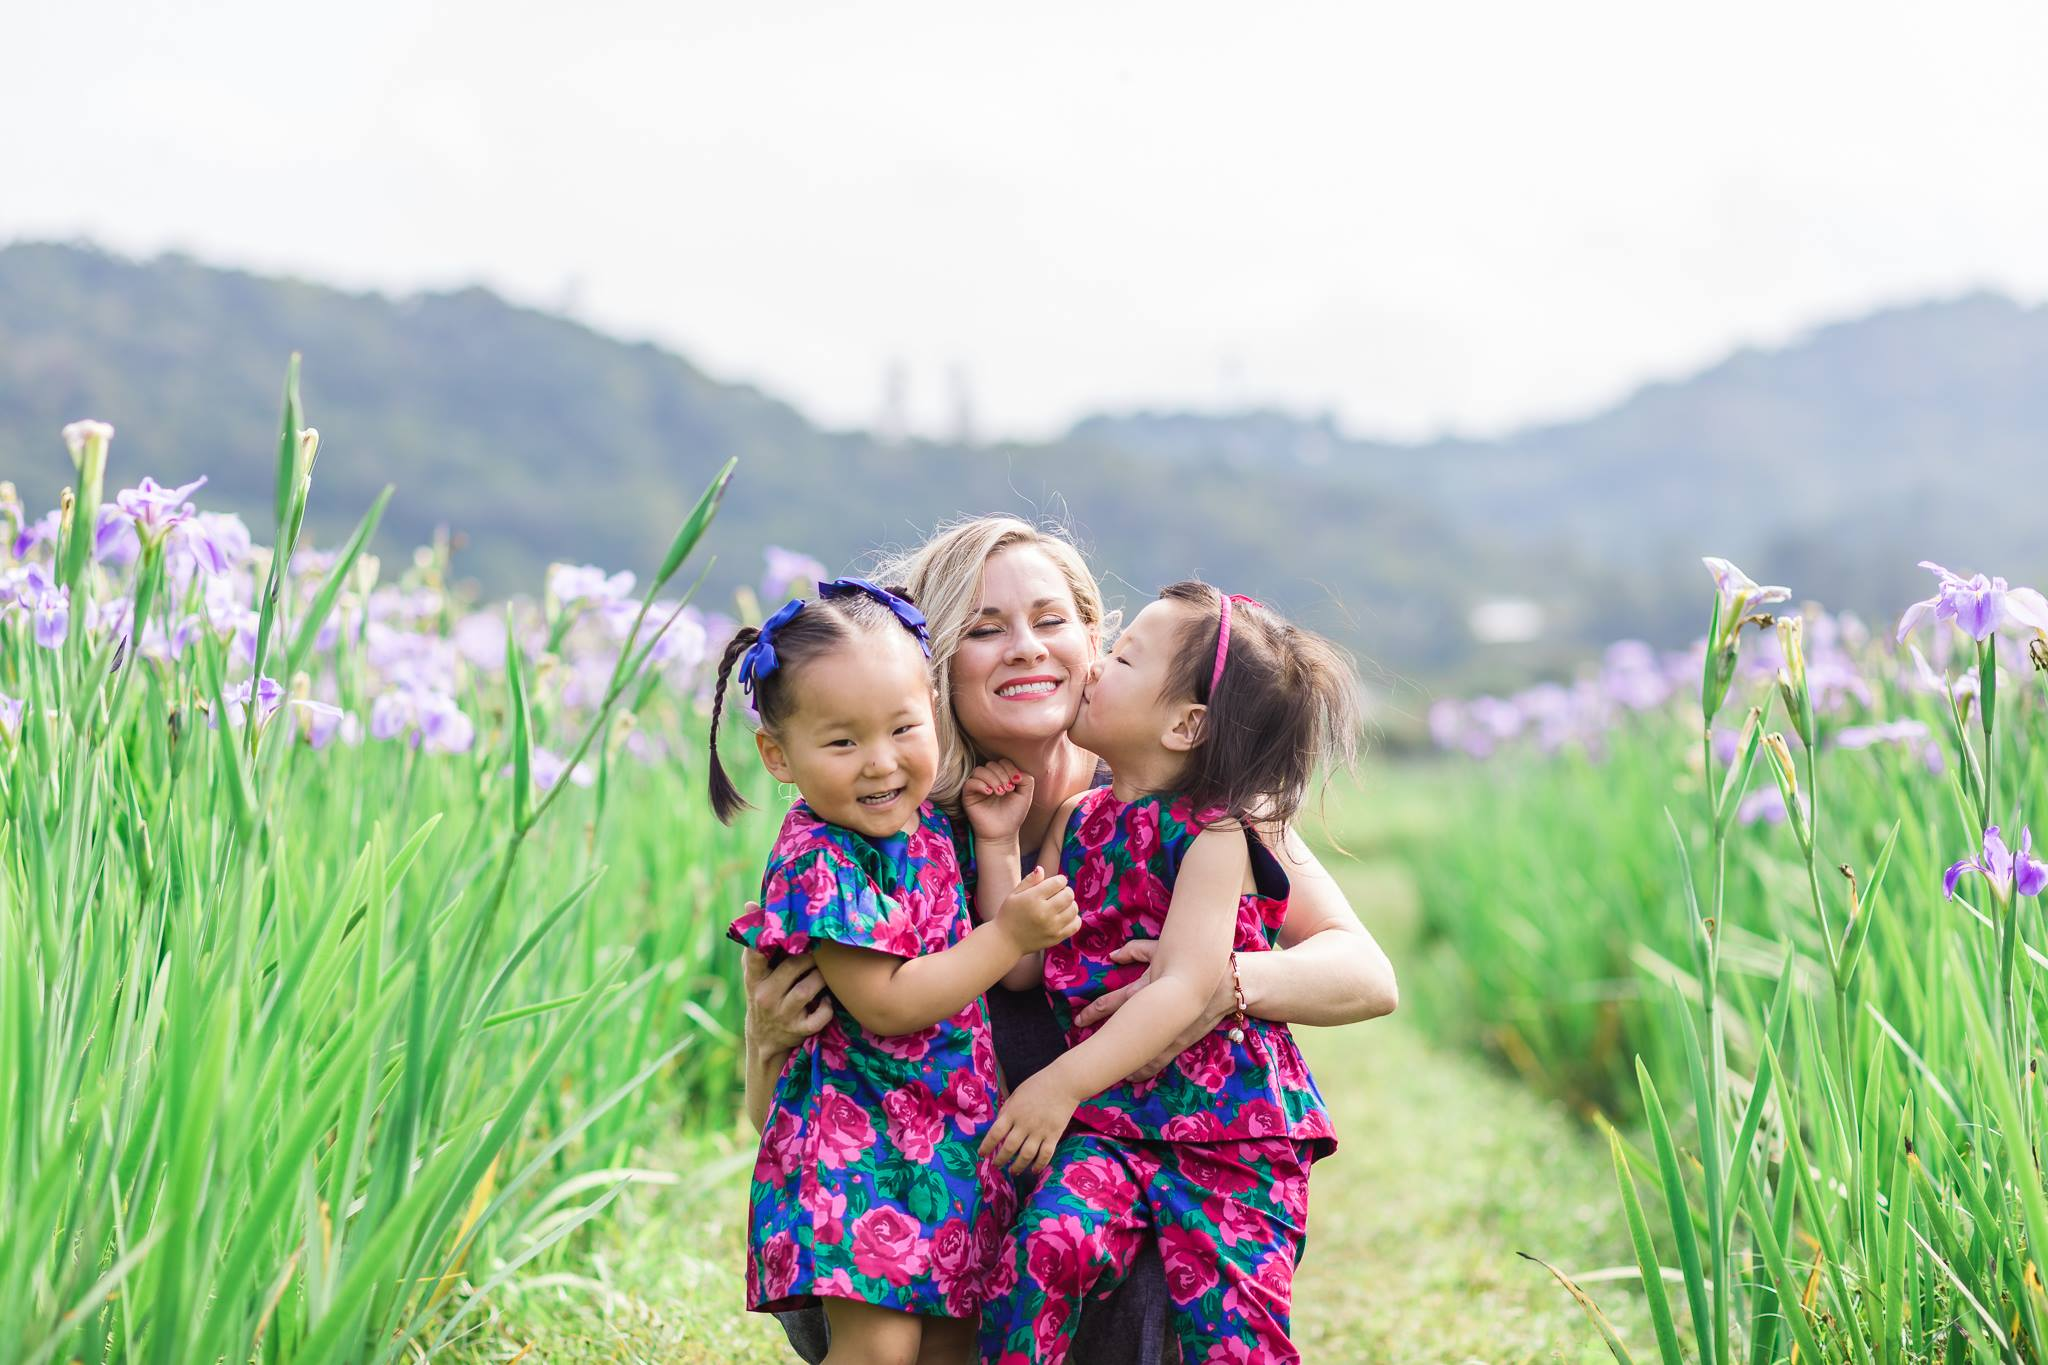 Okinawa iris field mommy and me4.jpg